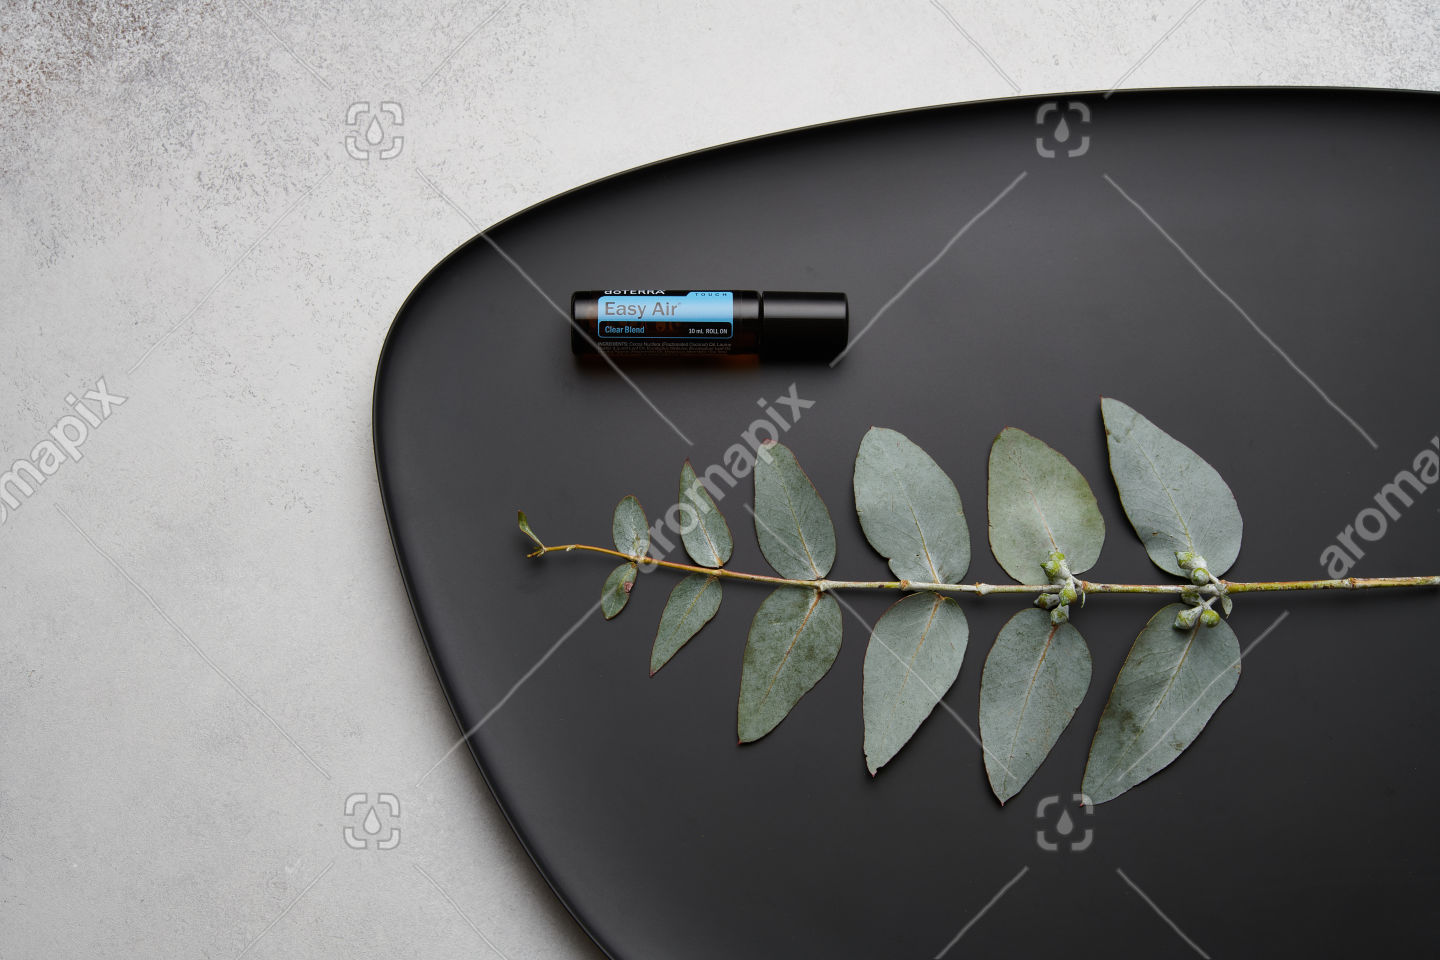 doTERRA Easy Air Touch and eucalyptus leaves on black plate